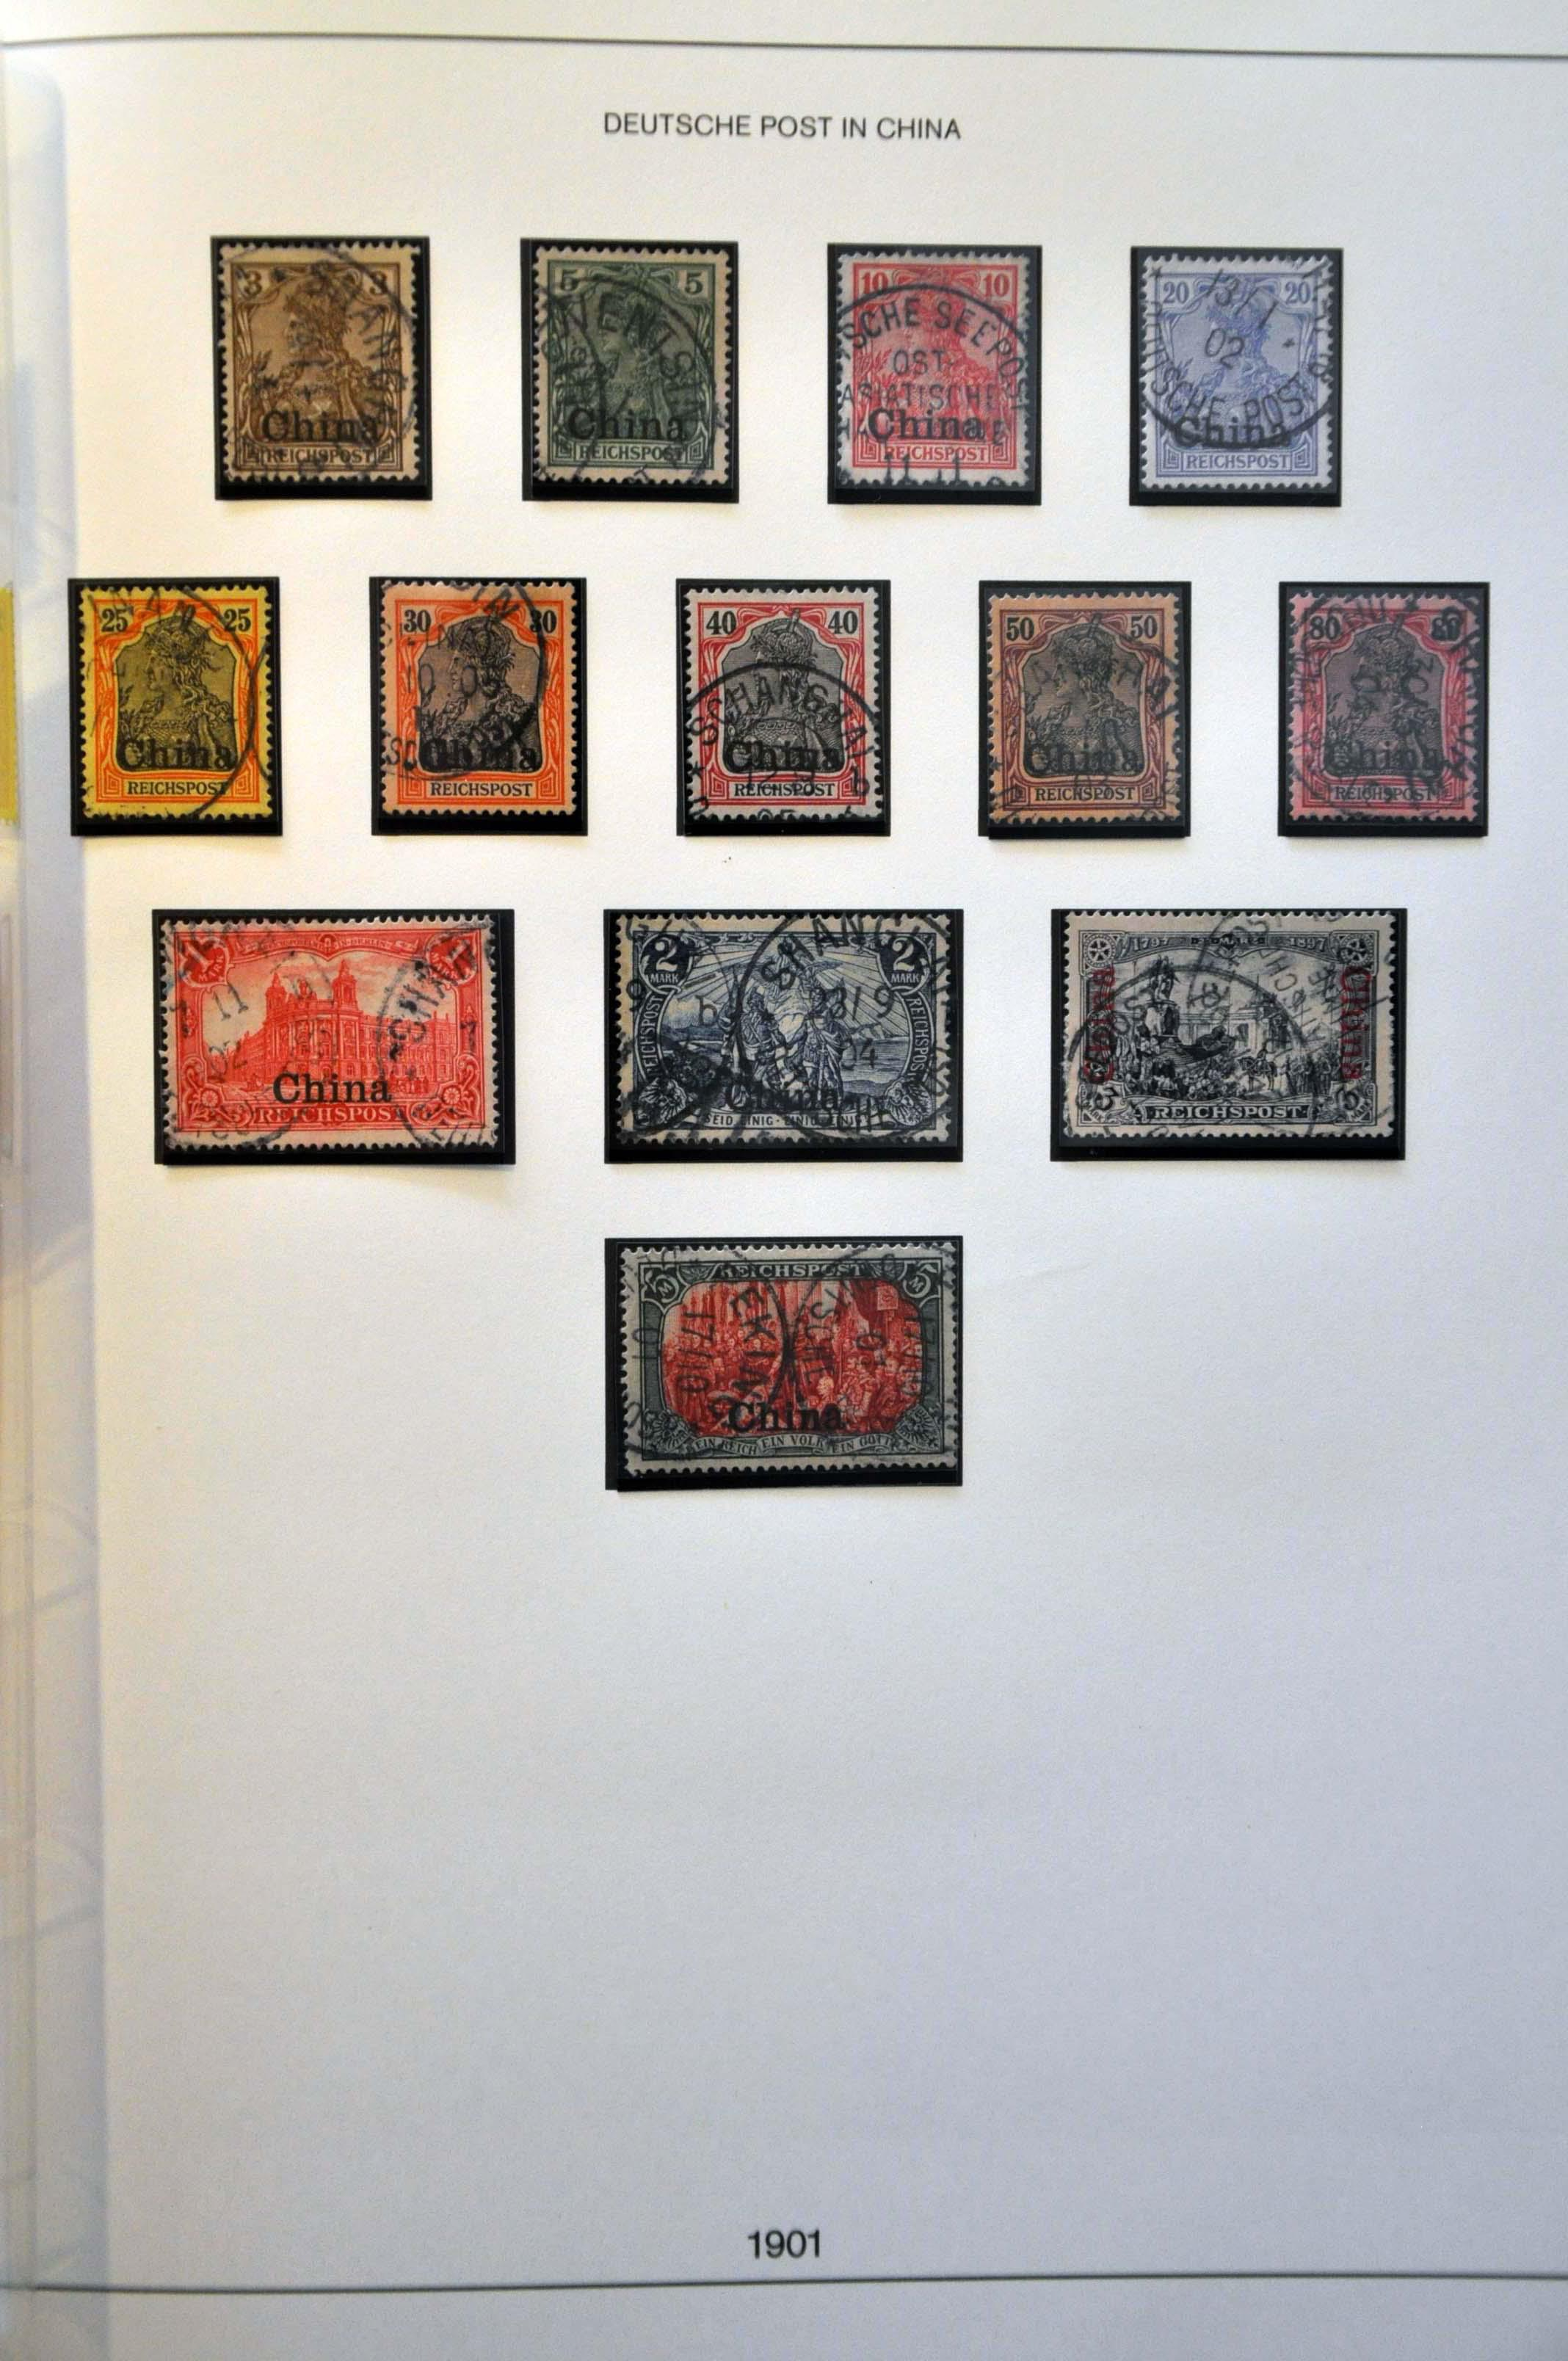 Lot 296 - Germany and former colonies German Post Office in China -  Corinphila Veilingen Auction 244 -Netherlands and former colonies, WW2 Postal History, Bosnia, German and British colonies, Egypt. - Day 1